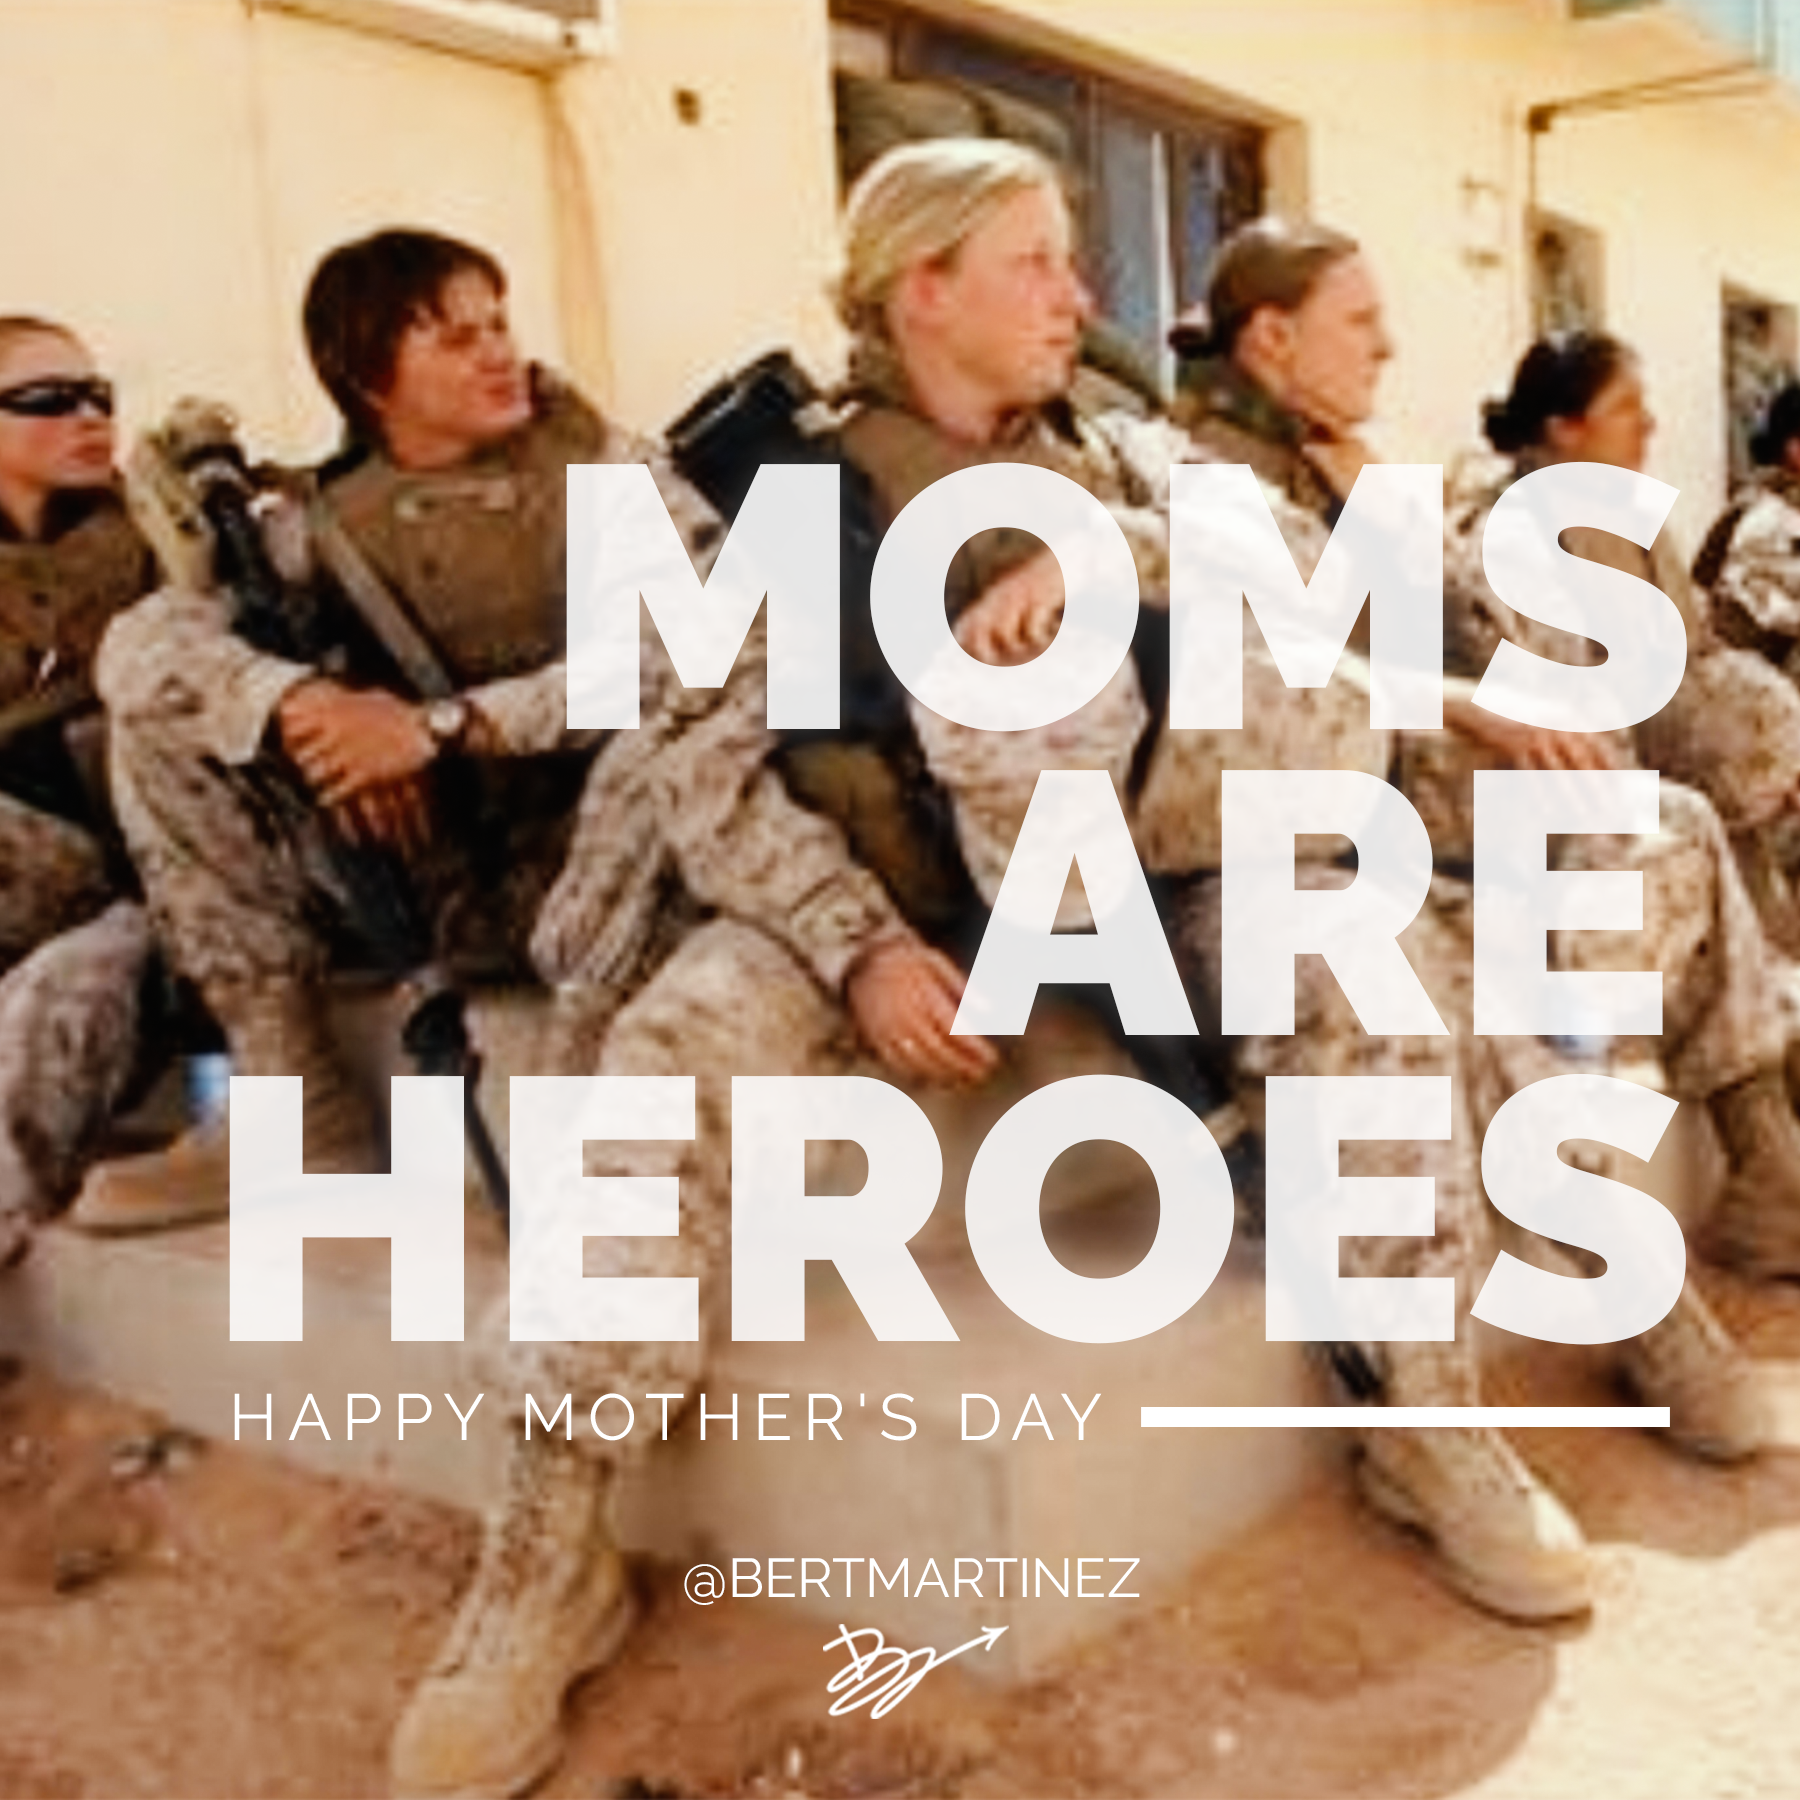 Moms Are Heroes Happy Mother S Day Thank You For Serving Business Loa Success Ceo Goals Bo Business Woman Quotes Happy Mothers Happy Mothers Day